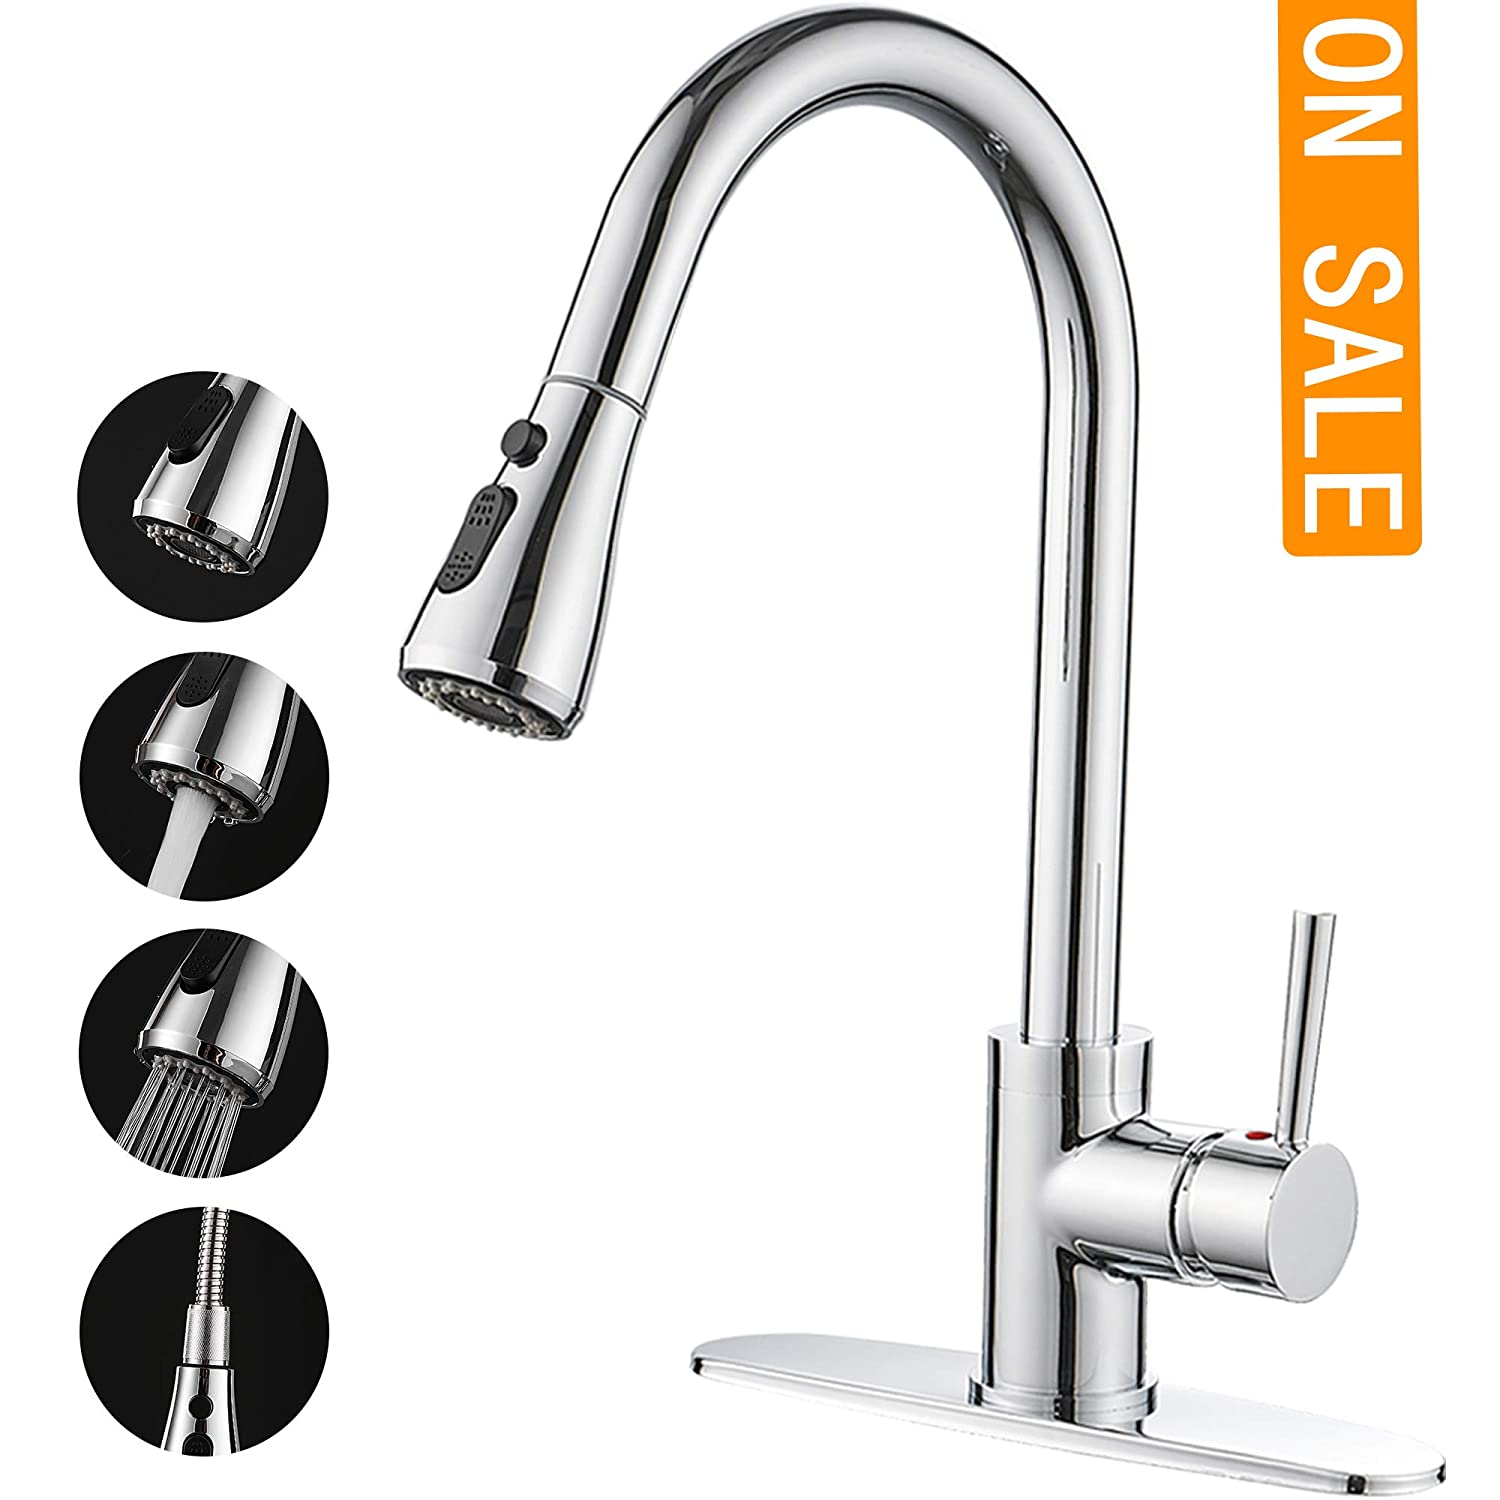 DOFASY Polished Chrome Kitchen Sink Faucet with 3 Function Pull Down Sprayer Solid Brass Single Handle High Arc Pull Out Kitchen Faucet Single Level Stainless Steel Faucets with Deck Plate 1 or 3 Hole